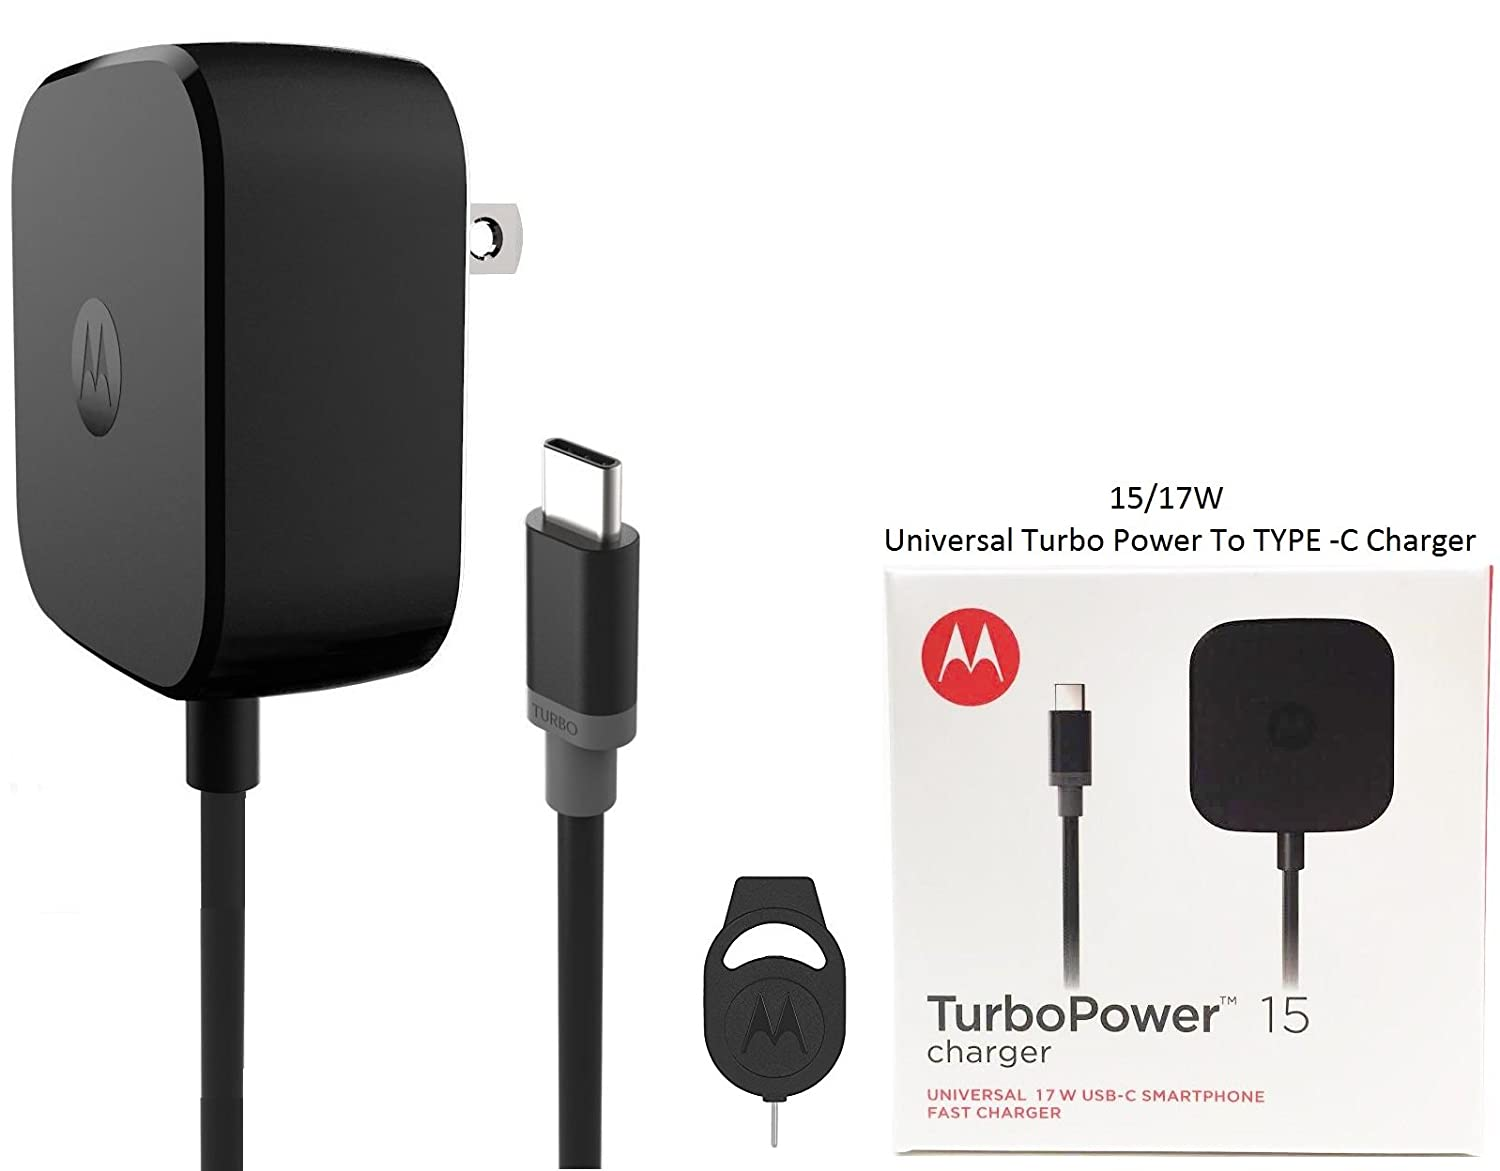 motorola usb c charger. amazon.com: motorola turbopower type c fast charger 15/17w \u0026 moto sim ejector - for z force/z droid/z play (retail packing): cell phones usb